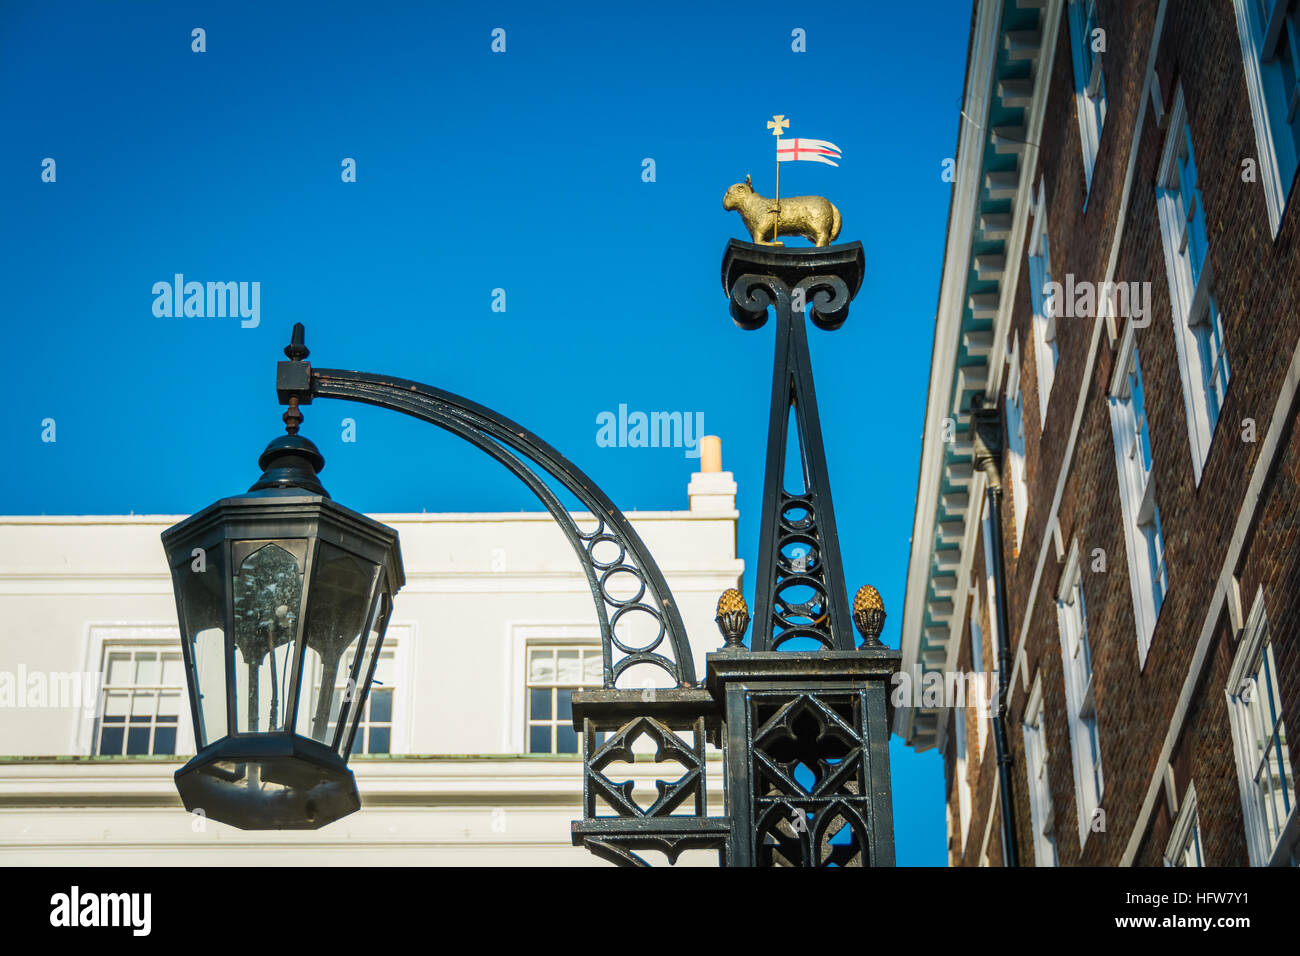 The Holy Lamb and Flag crest at the Inns of Court. London, UK, - Stock Image